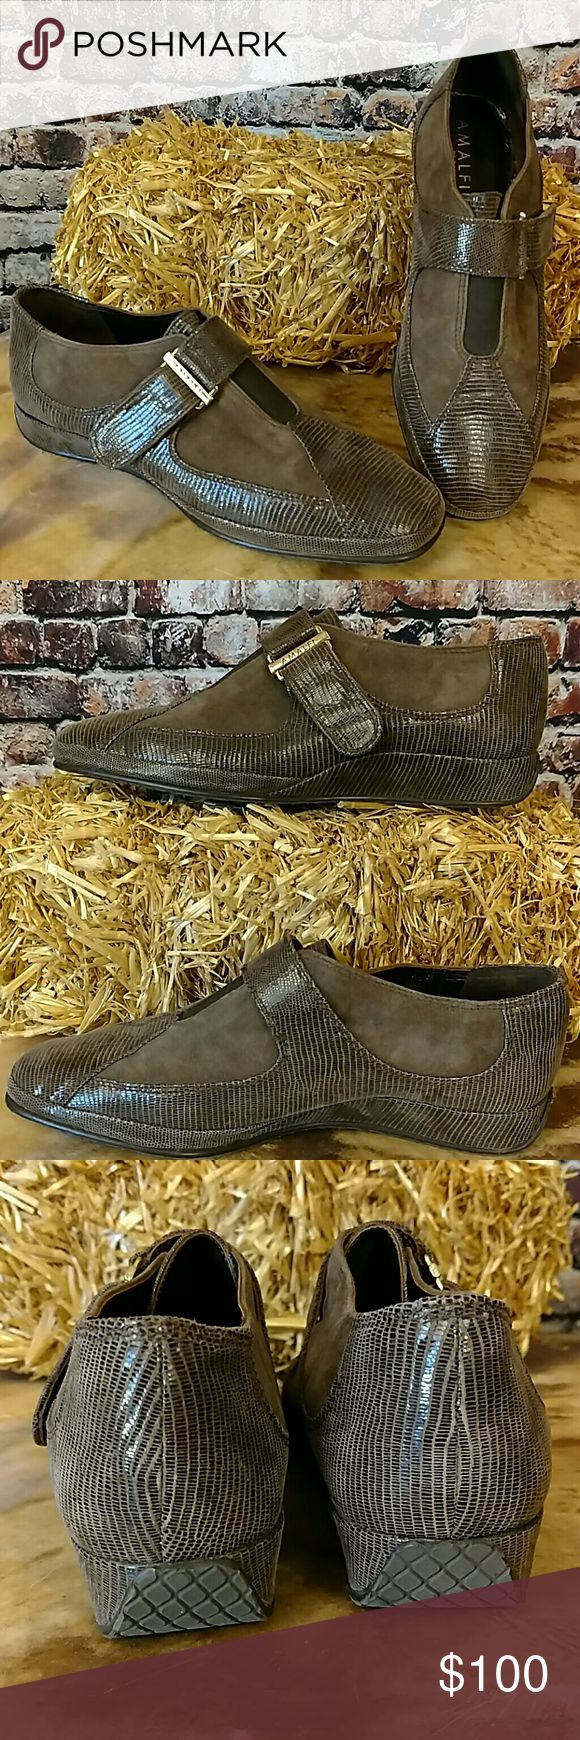 NWOB Almafi by Rangoni Italian Loafers New without box. Beautiful Italian made brown suede and faux snake shoes,  elastic front gore, velcro adjustable buckle, rubber Soul. Size 7 Amalfi by Rengoni Shoes Flats & Loafers